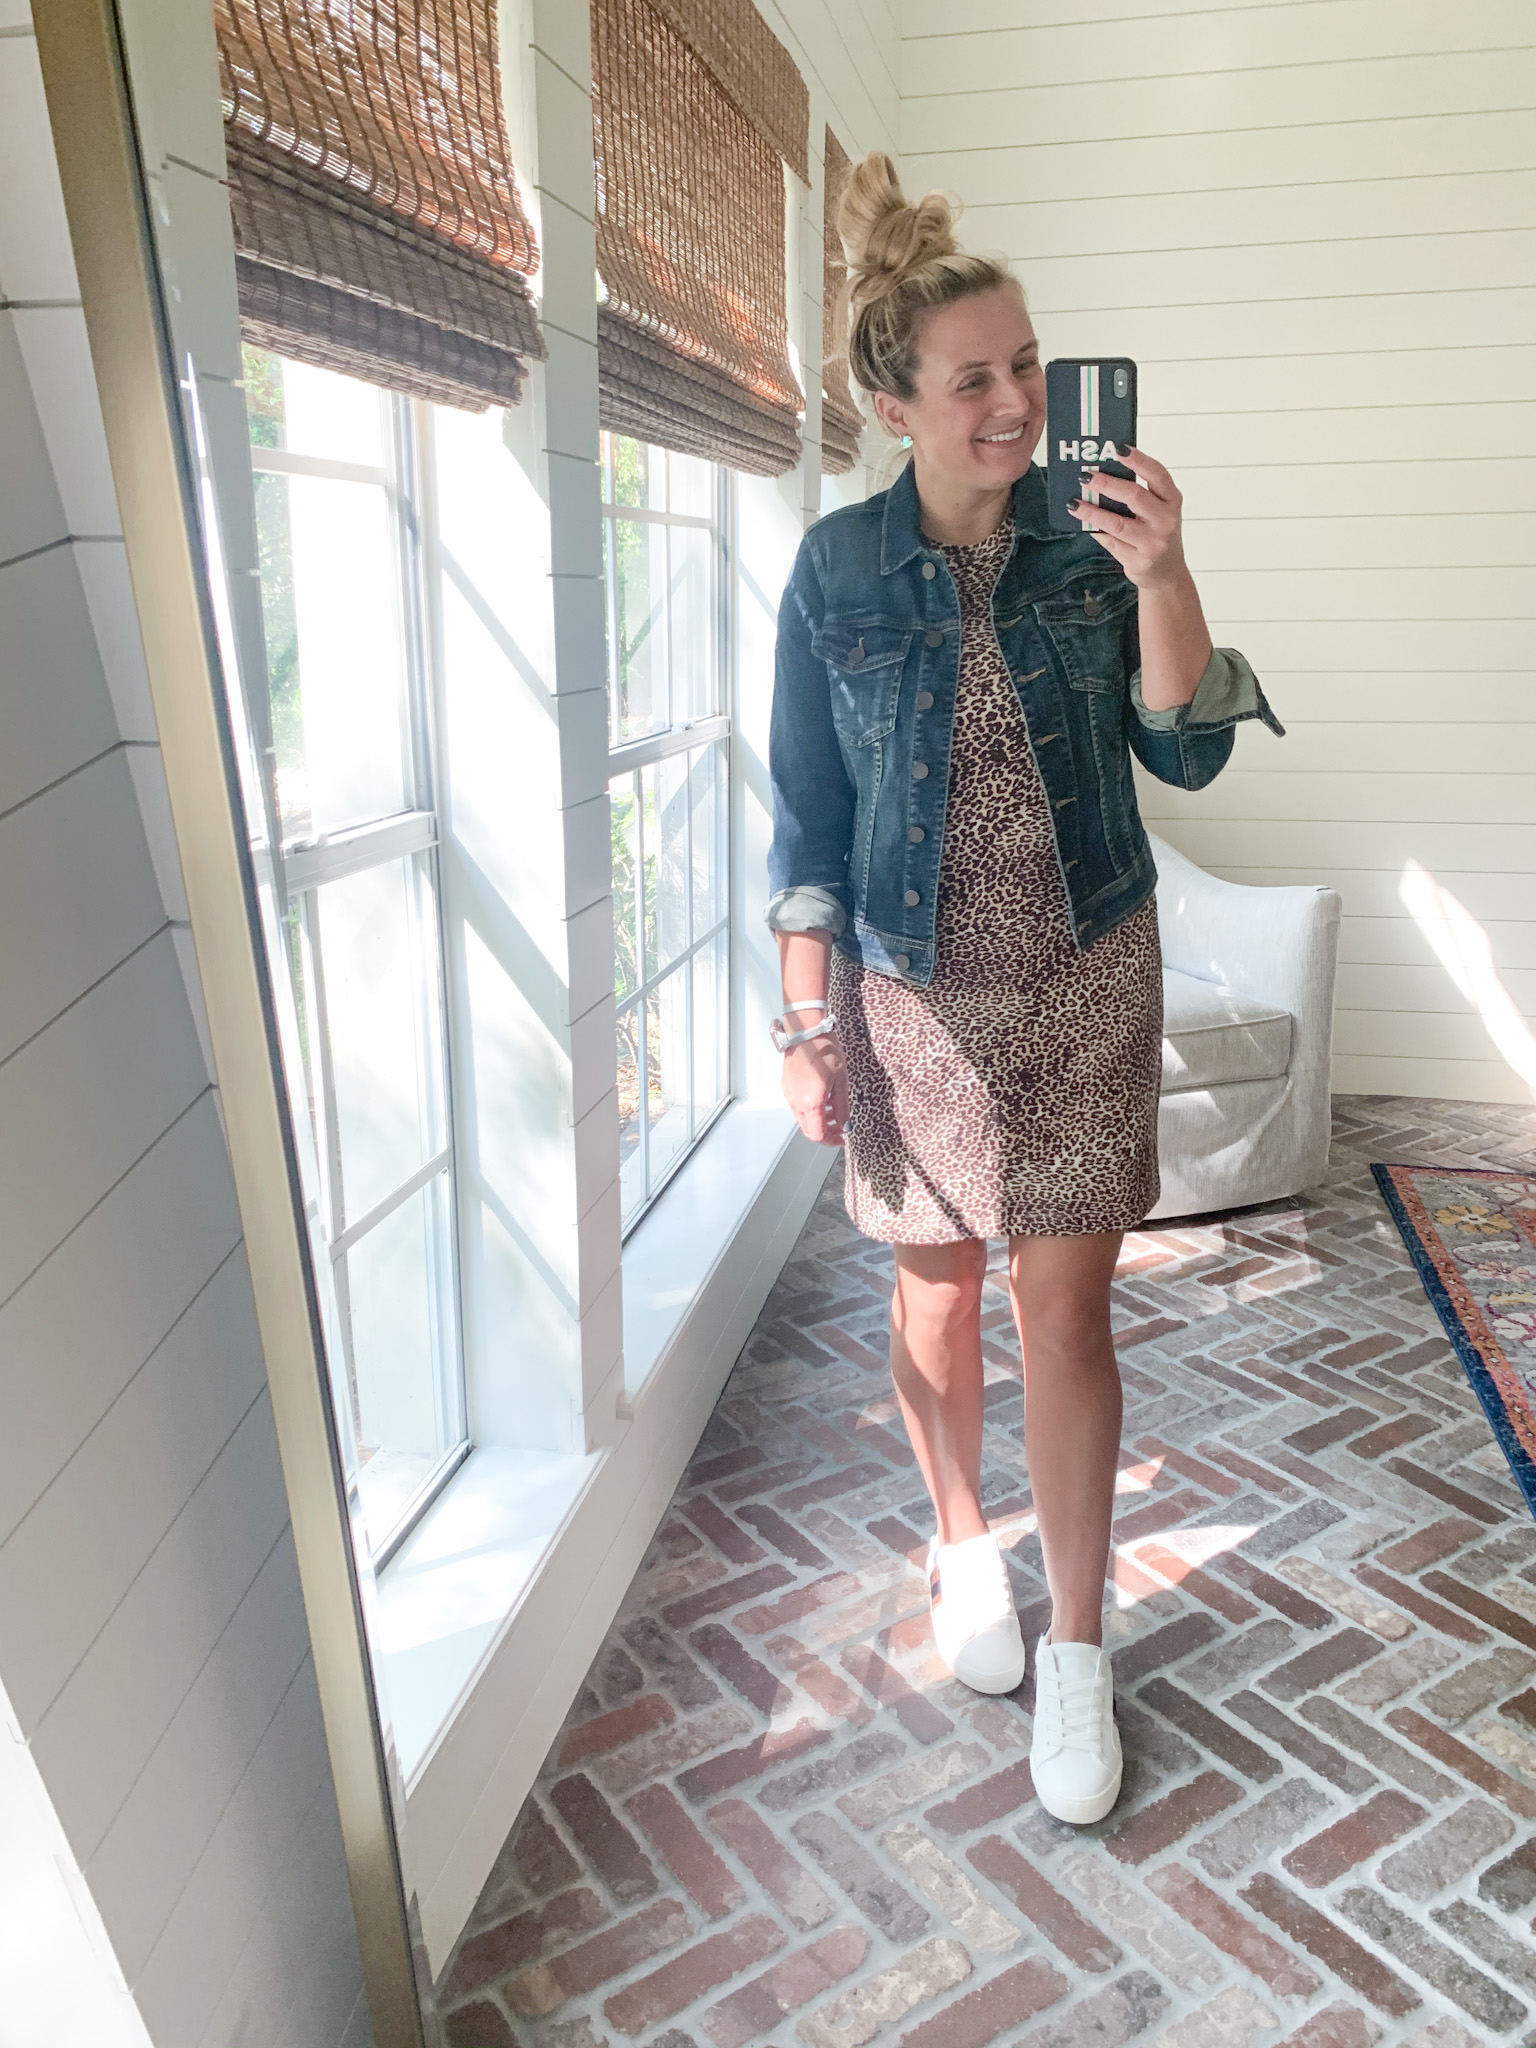 Amazon Haul by popular Houston fashion blog, Fancy Ashley: image of a woman wearing a Amazon Daily Ritual Women's Supersoft Terry Relaxed-Fit Puff-Sleeve Dress, Nordstrom Kut From the Kloth Helena Denim Jacket, and Walmart Time and Tru Women's Fashion Sneakers.